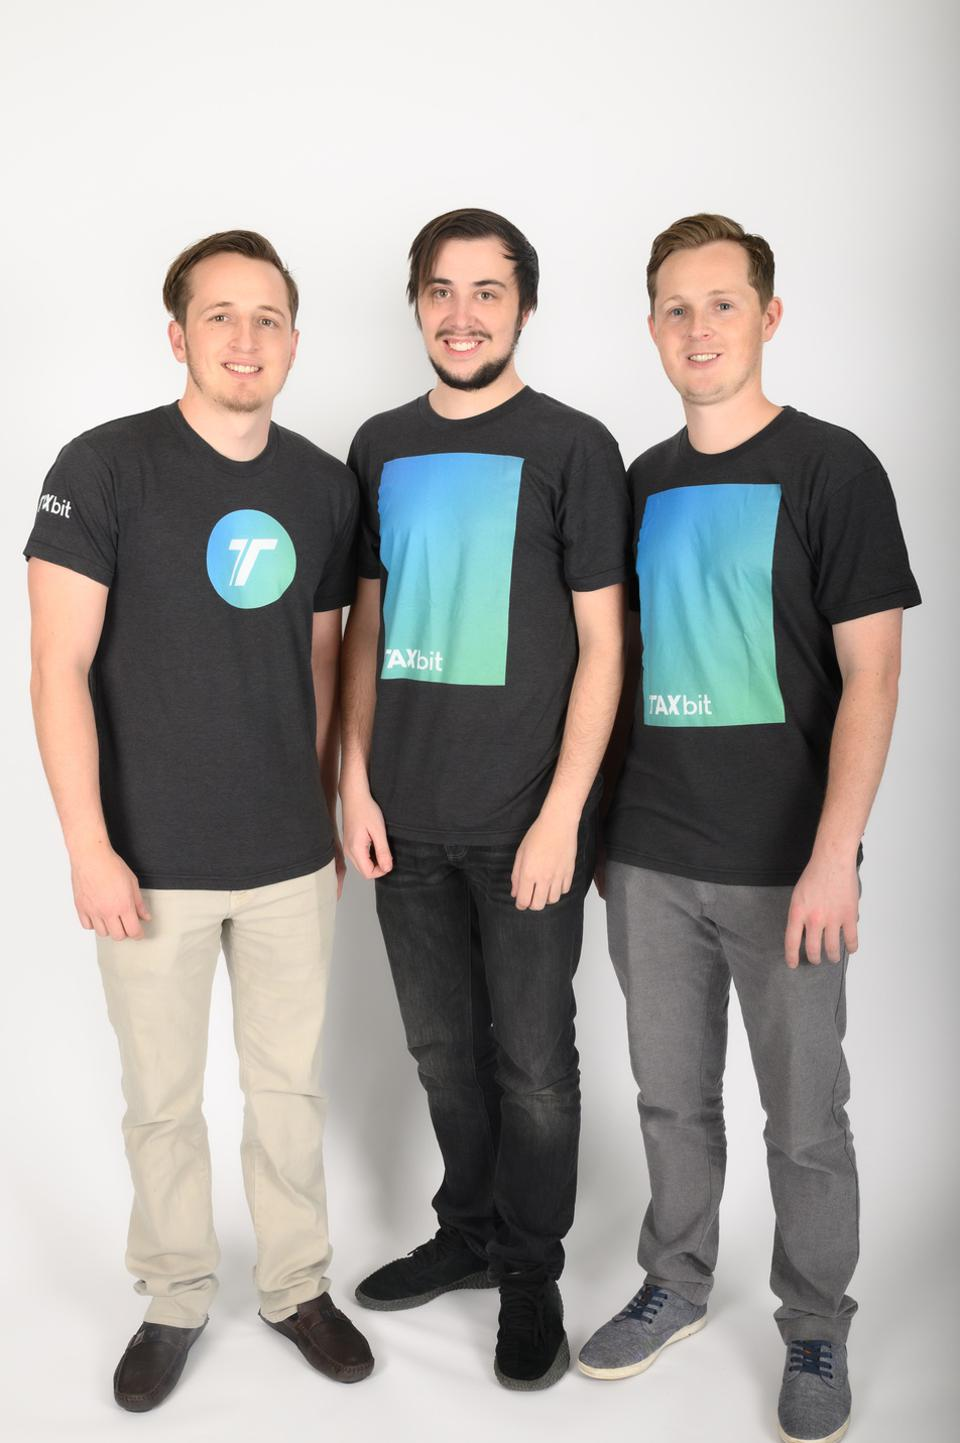 TaxBit cofounders Justin Woodward, Brandon Woodward and Austin Woodward